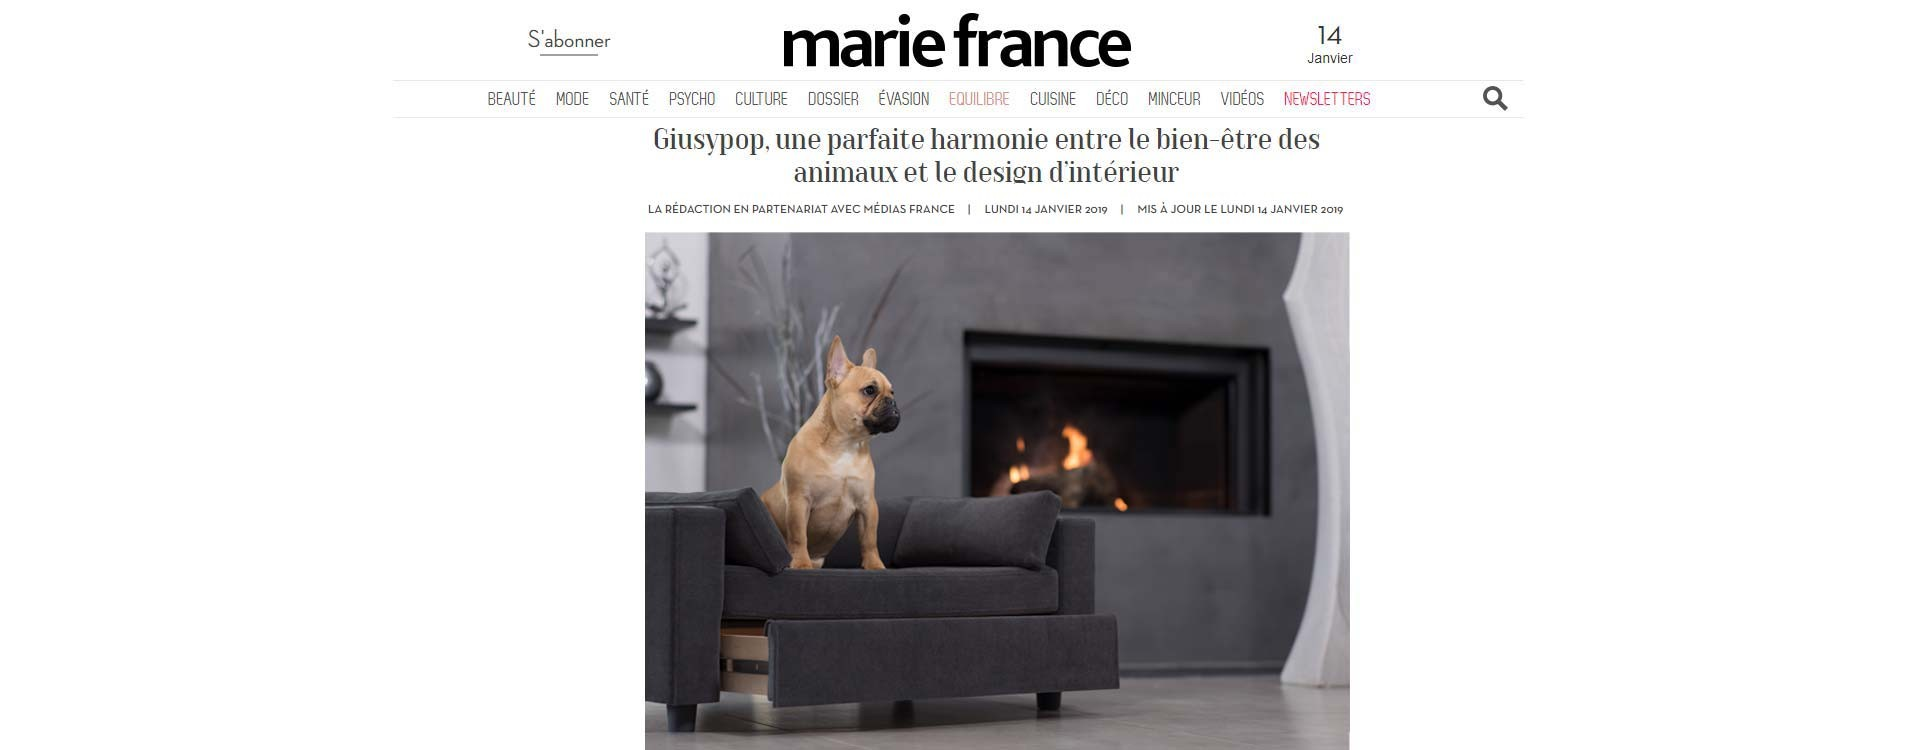 mariefrance.fr press talk about Giusypop